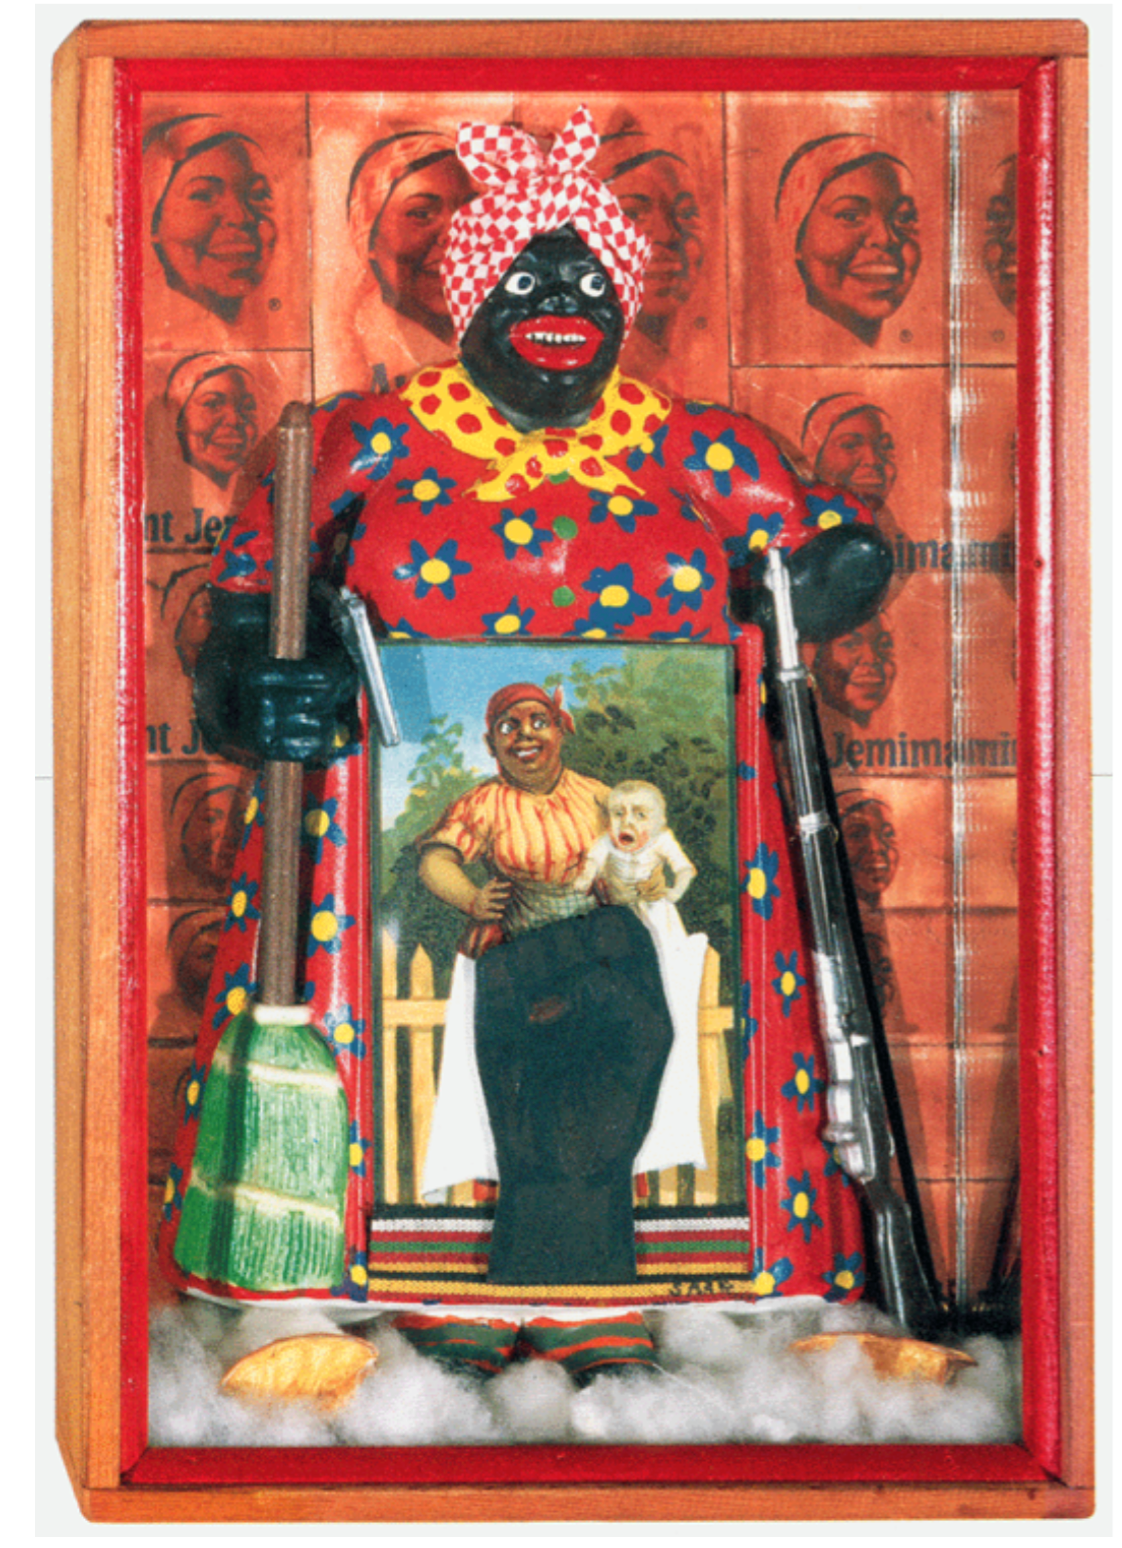 The art piece The Liberation of Aunt Jemima